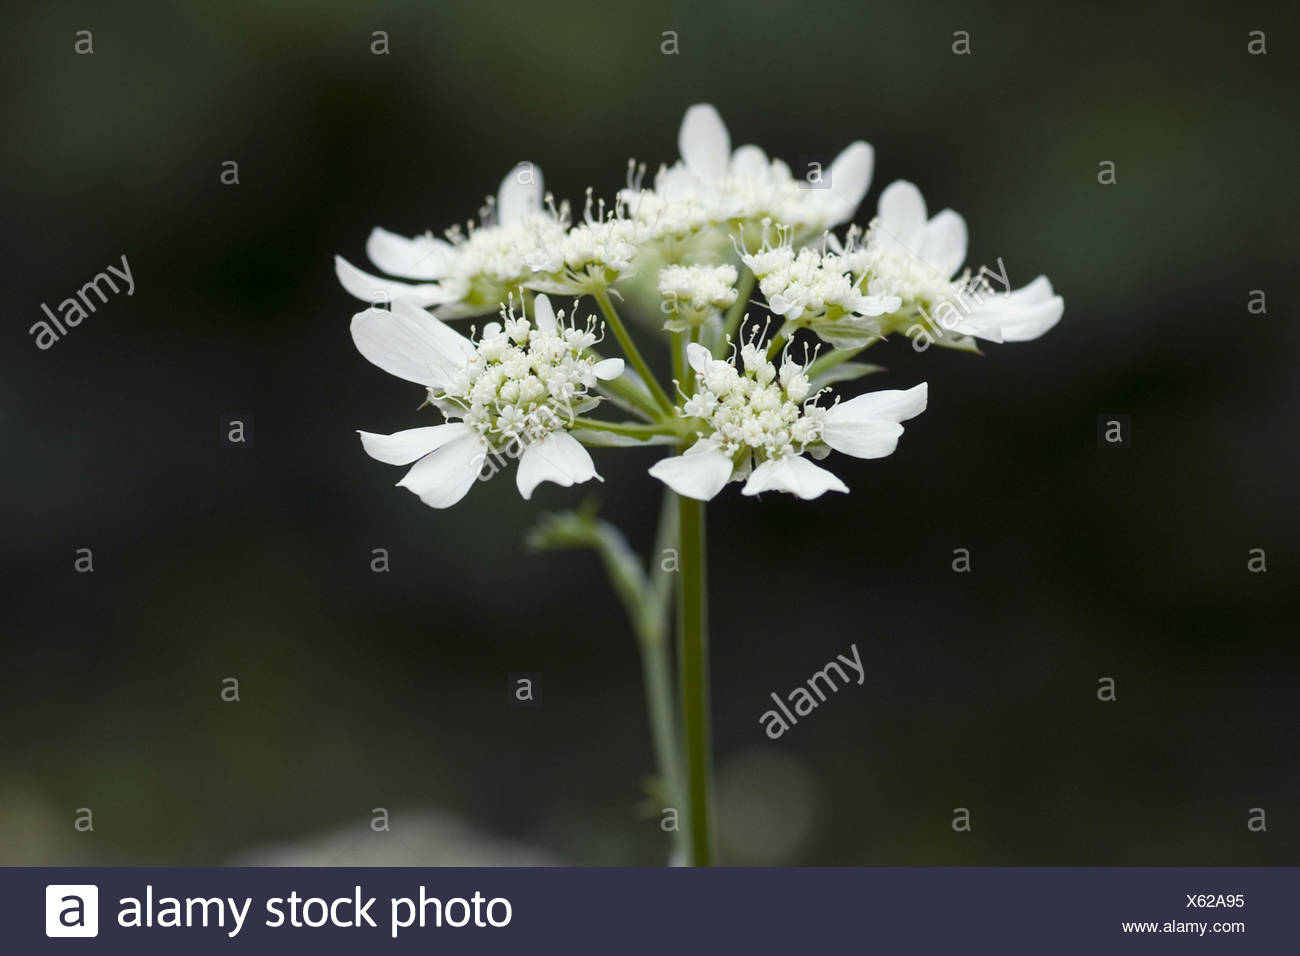 orlaya grandiflora Stock Photo